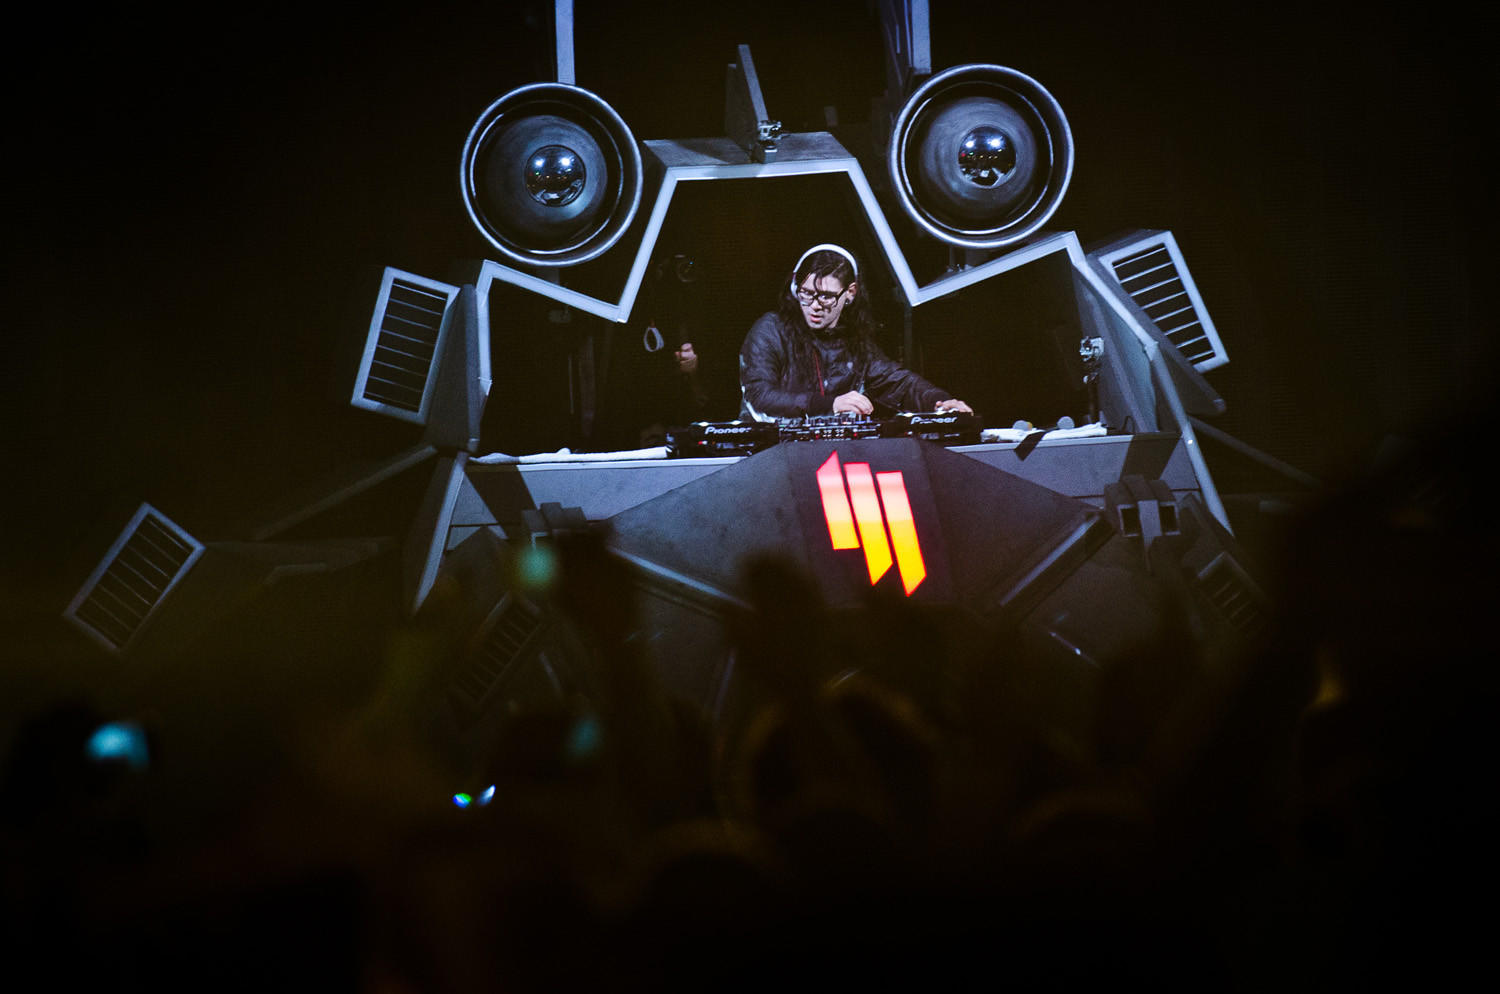 Skrillex closes out the west stage at the Virgin Mobile FreeFest at Merriweather Post Pavilion in 2012.